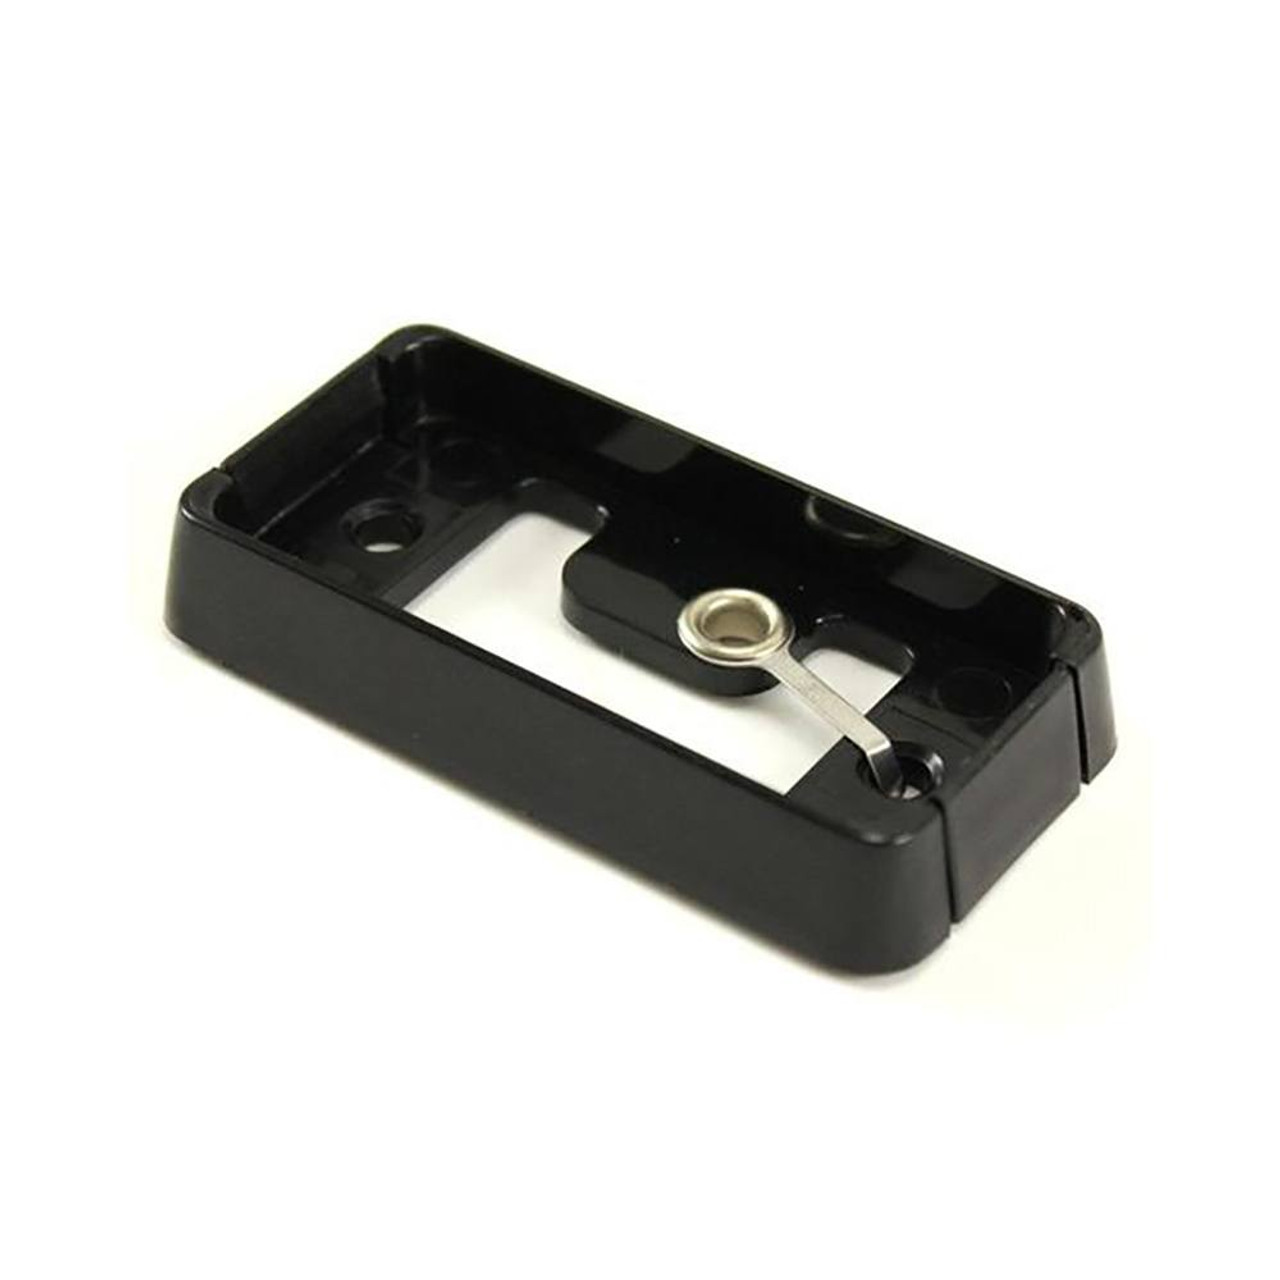 Plastic Base for Small Trailer Clearance light - Snap Lock